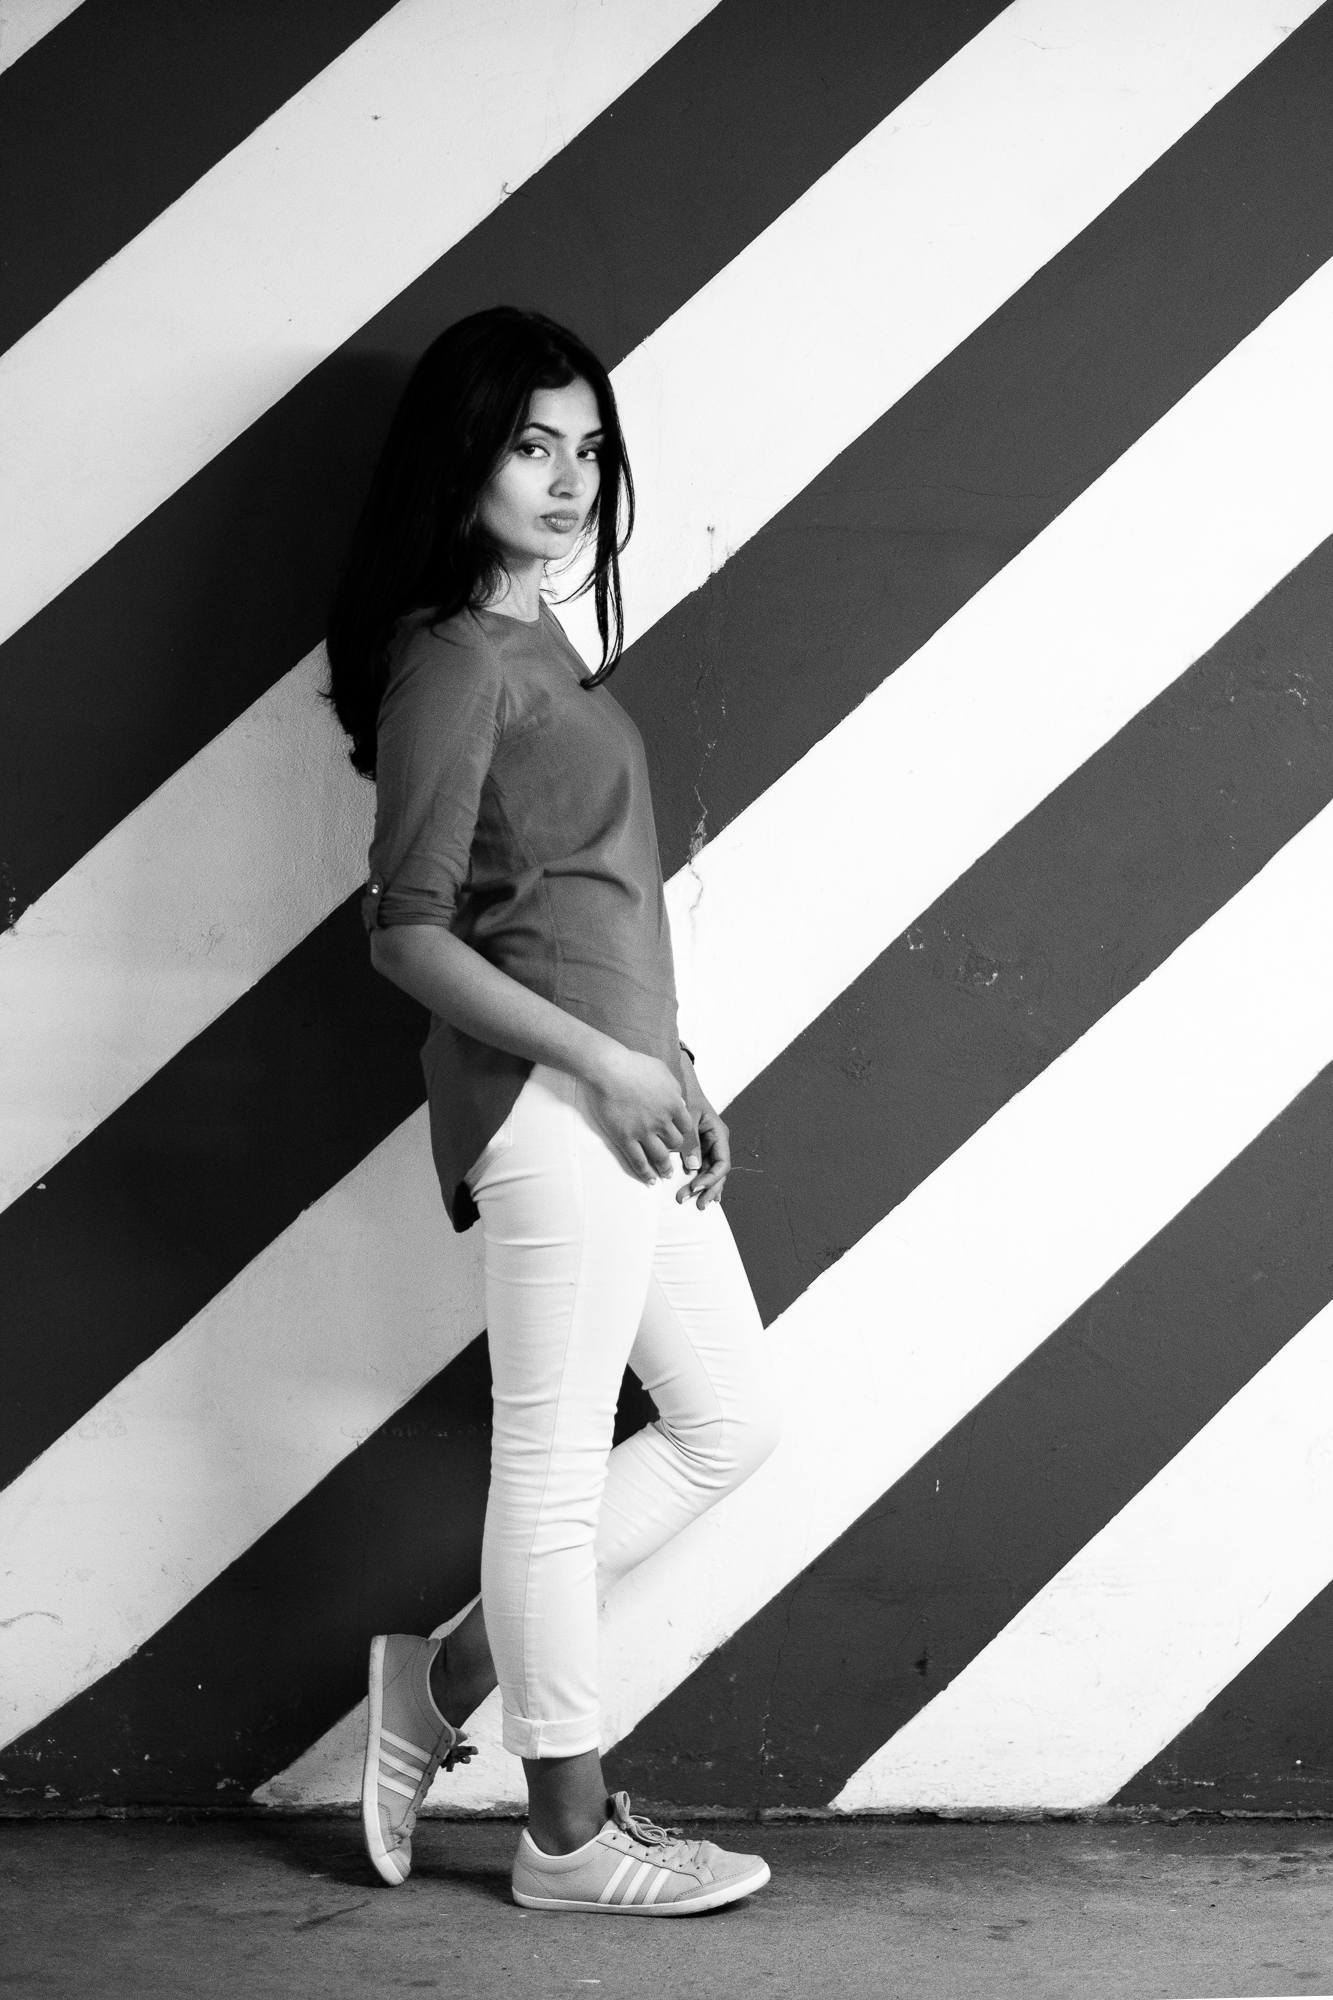 A girl with a red shirt and white pants in front of a red and white striped background